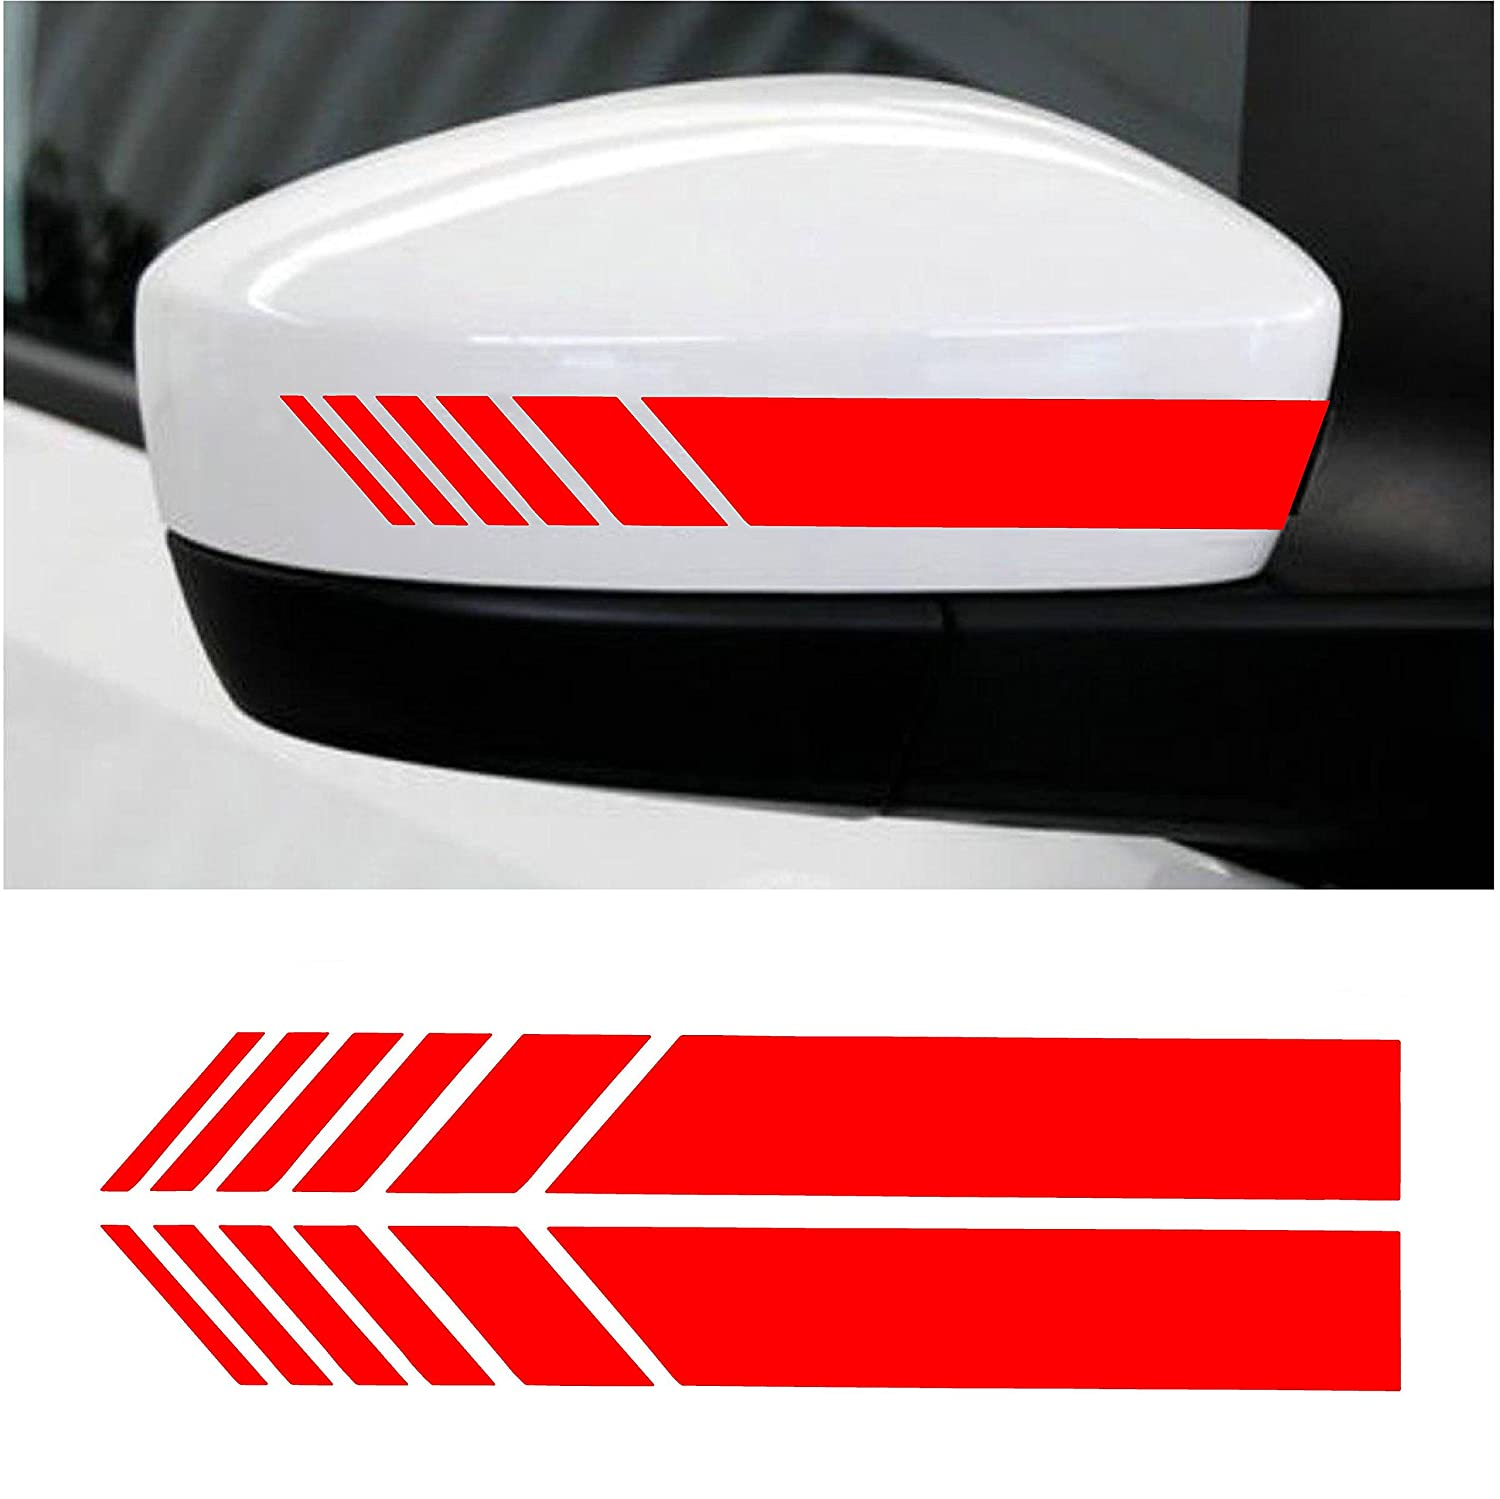 Cvanu car rearview mirror strip sticker vinyl racing decal emblem red for honda brv amazon in car motorbike